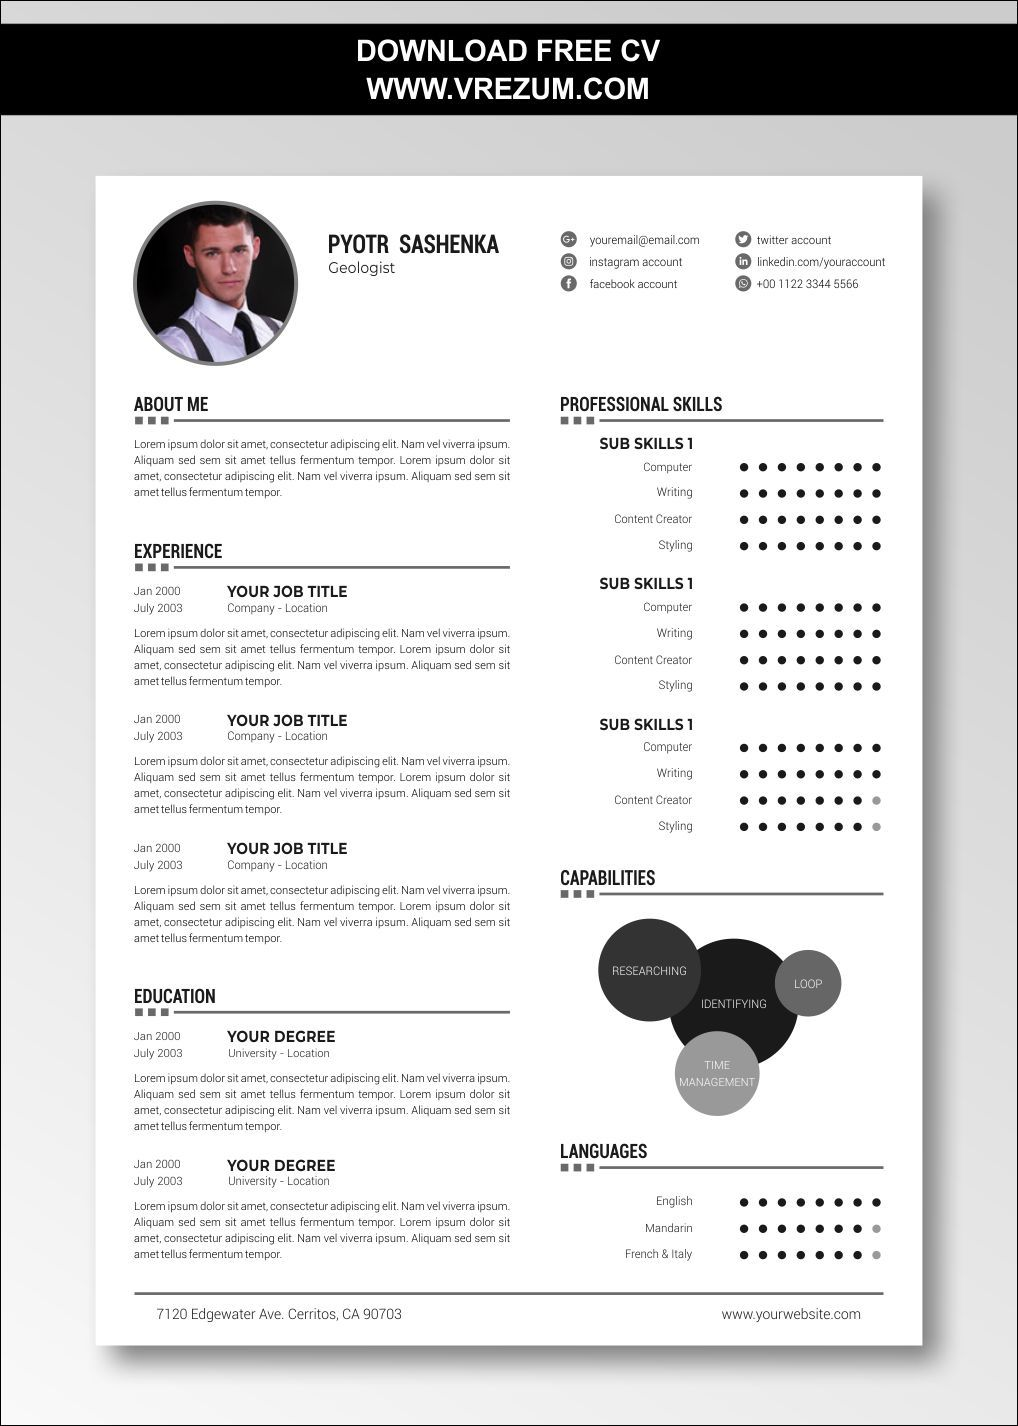 (EDITABLE) - FREE CV Templates For Geologist in 2020 (With images) | Cv template free, Cv ...